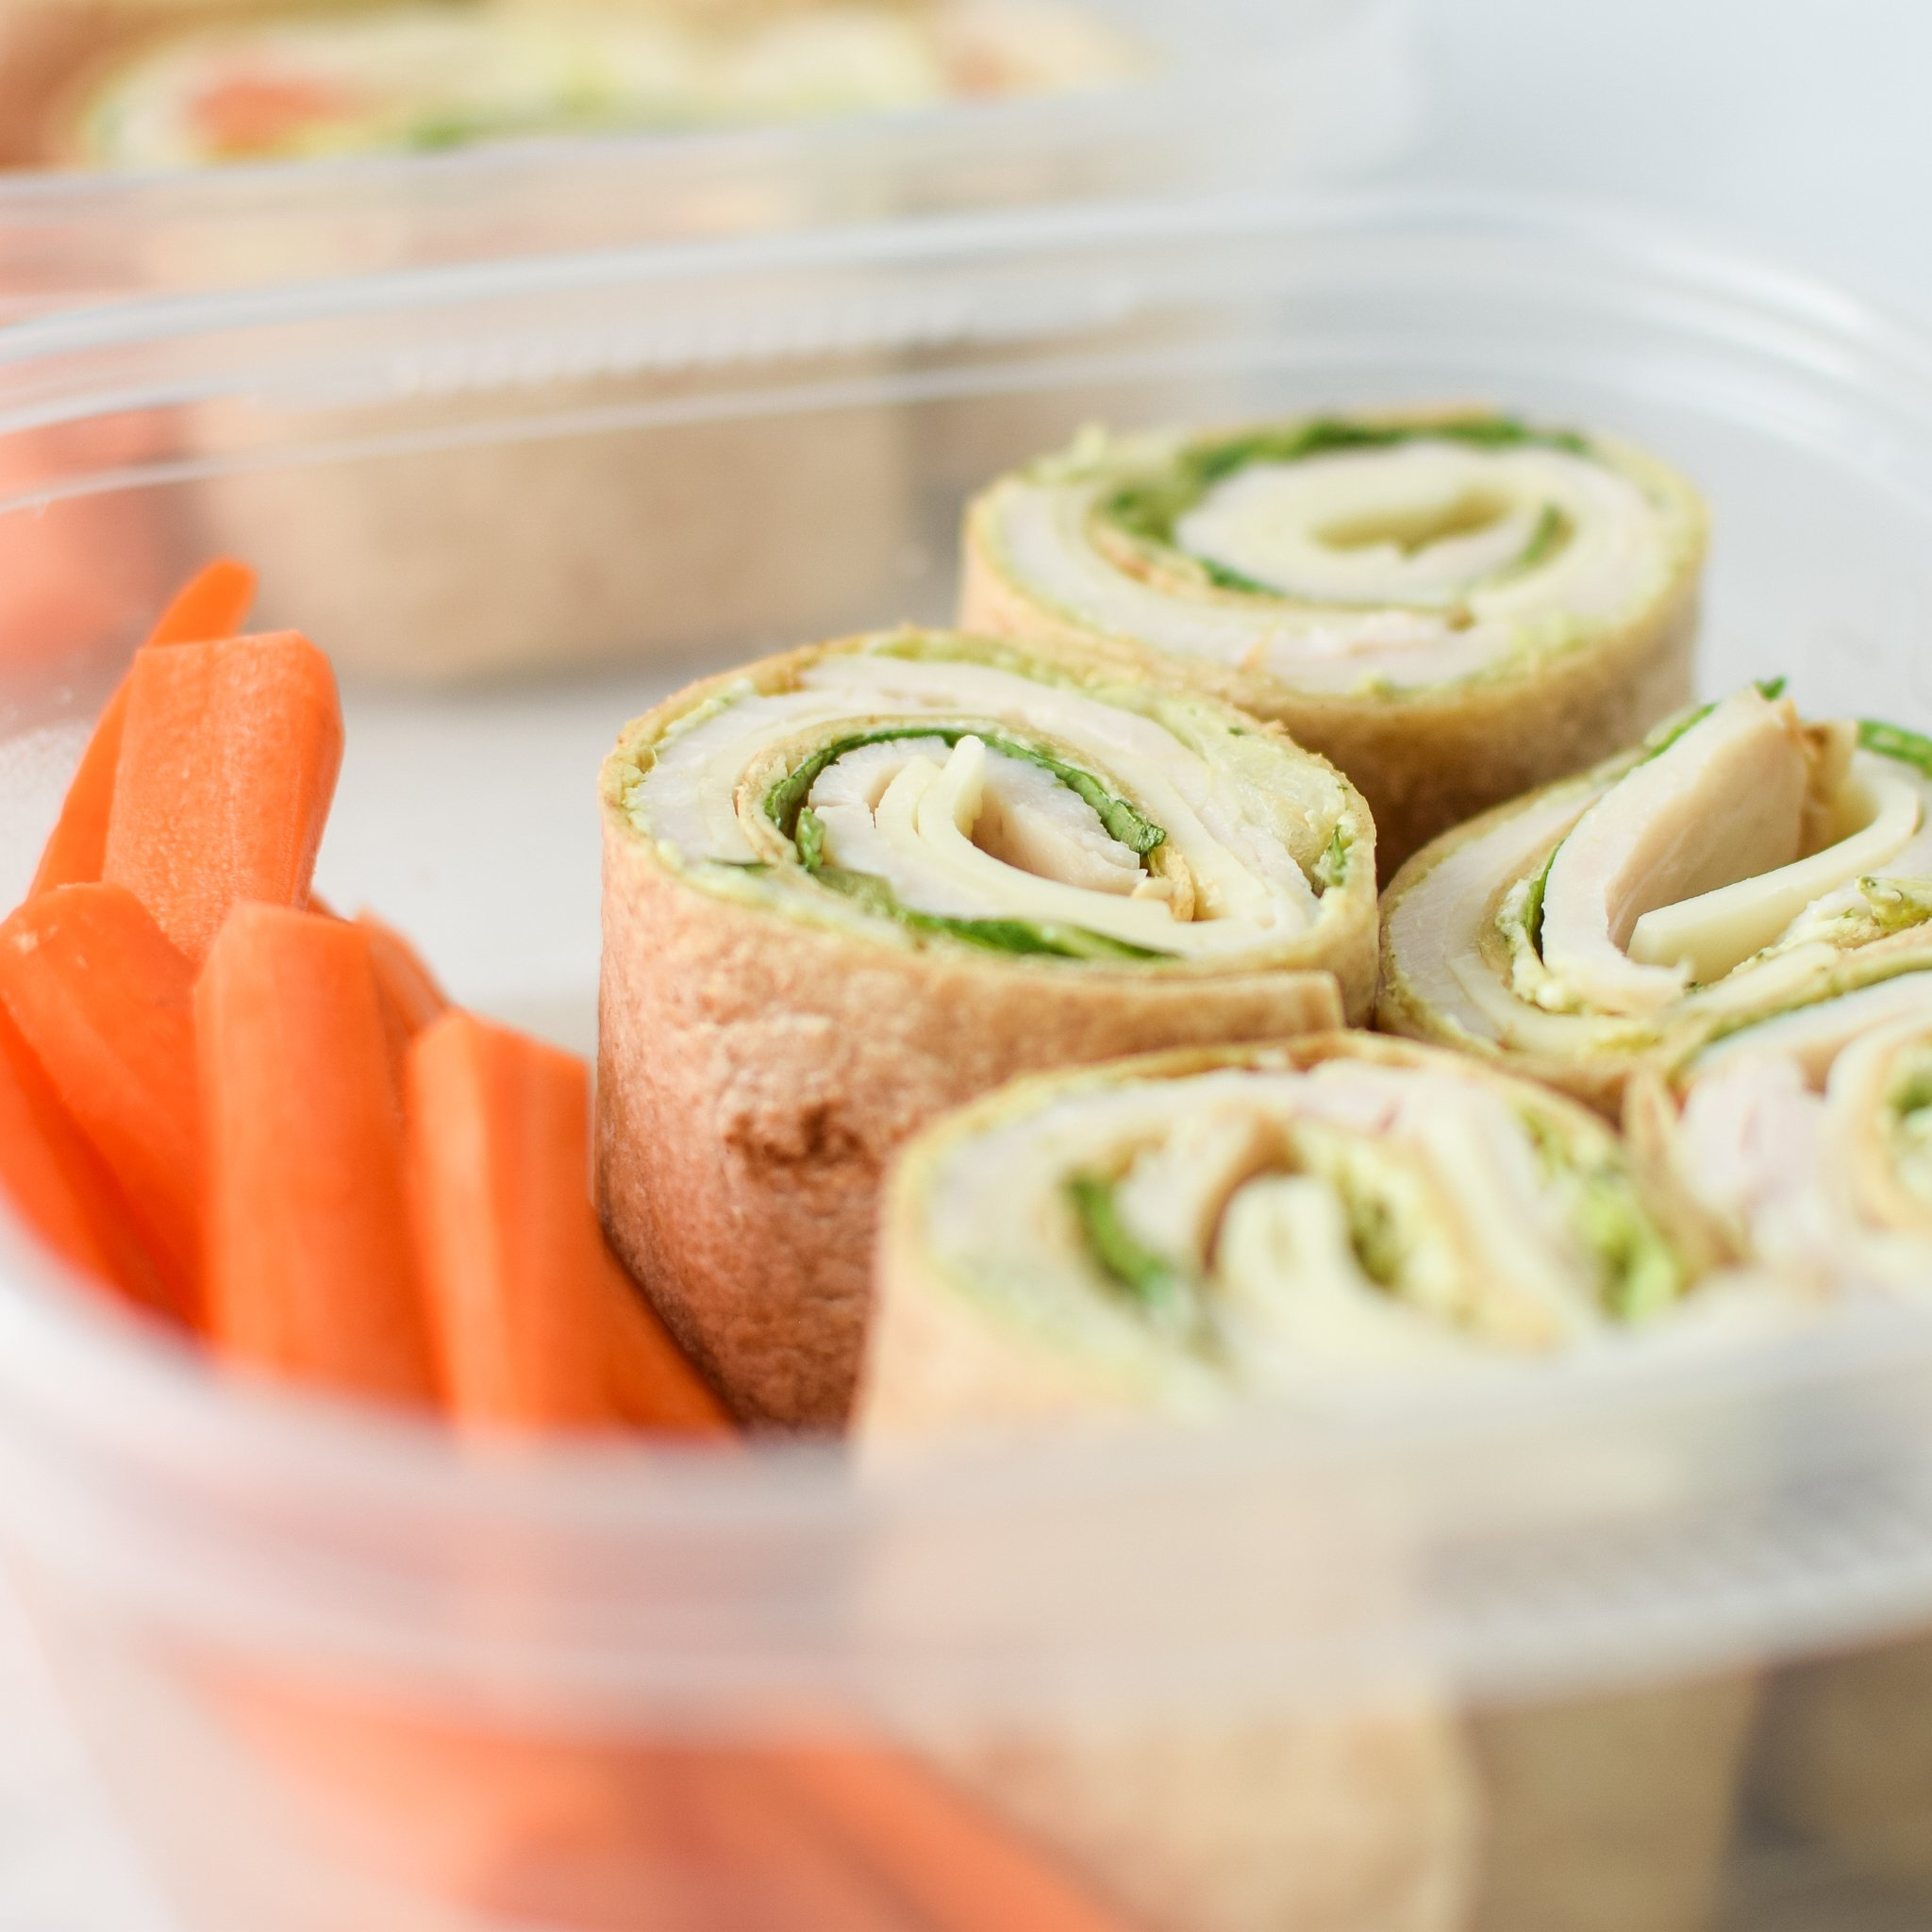 Turkey Pesto Tortilla Pinwheels meal prepped with carrot sticks